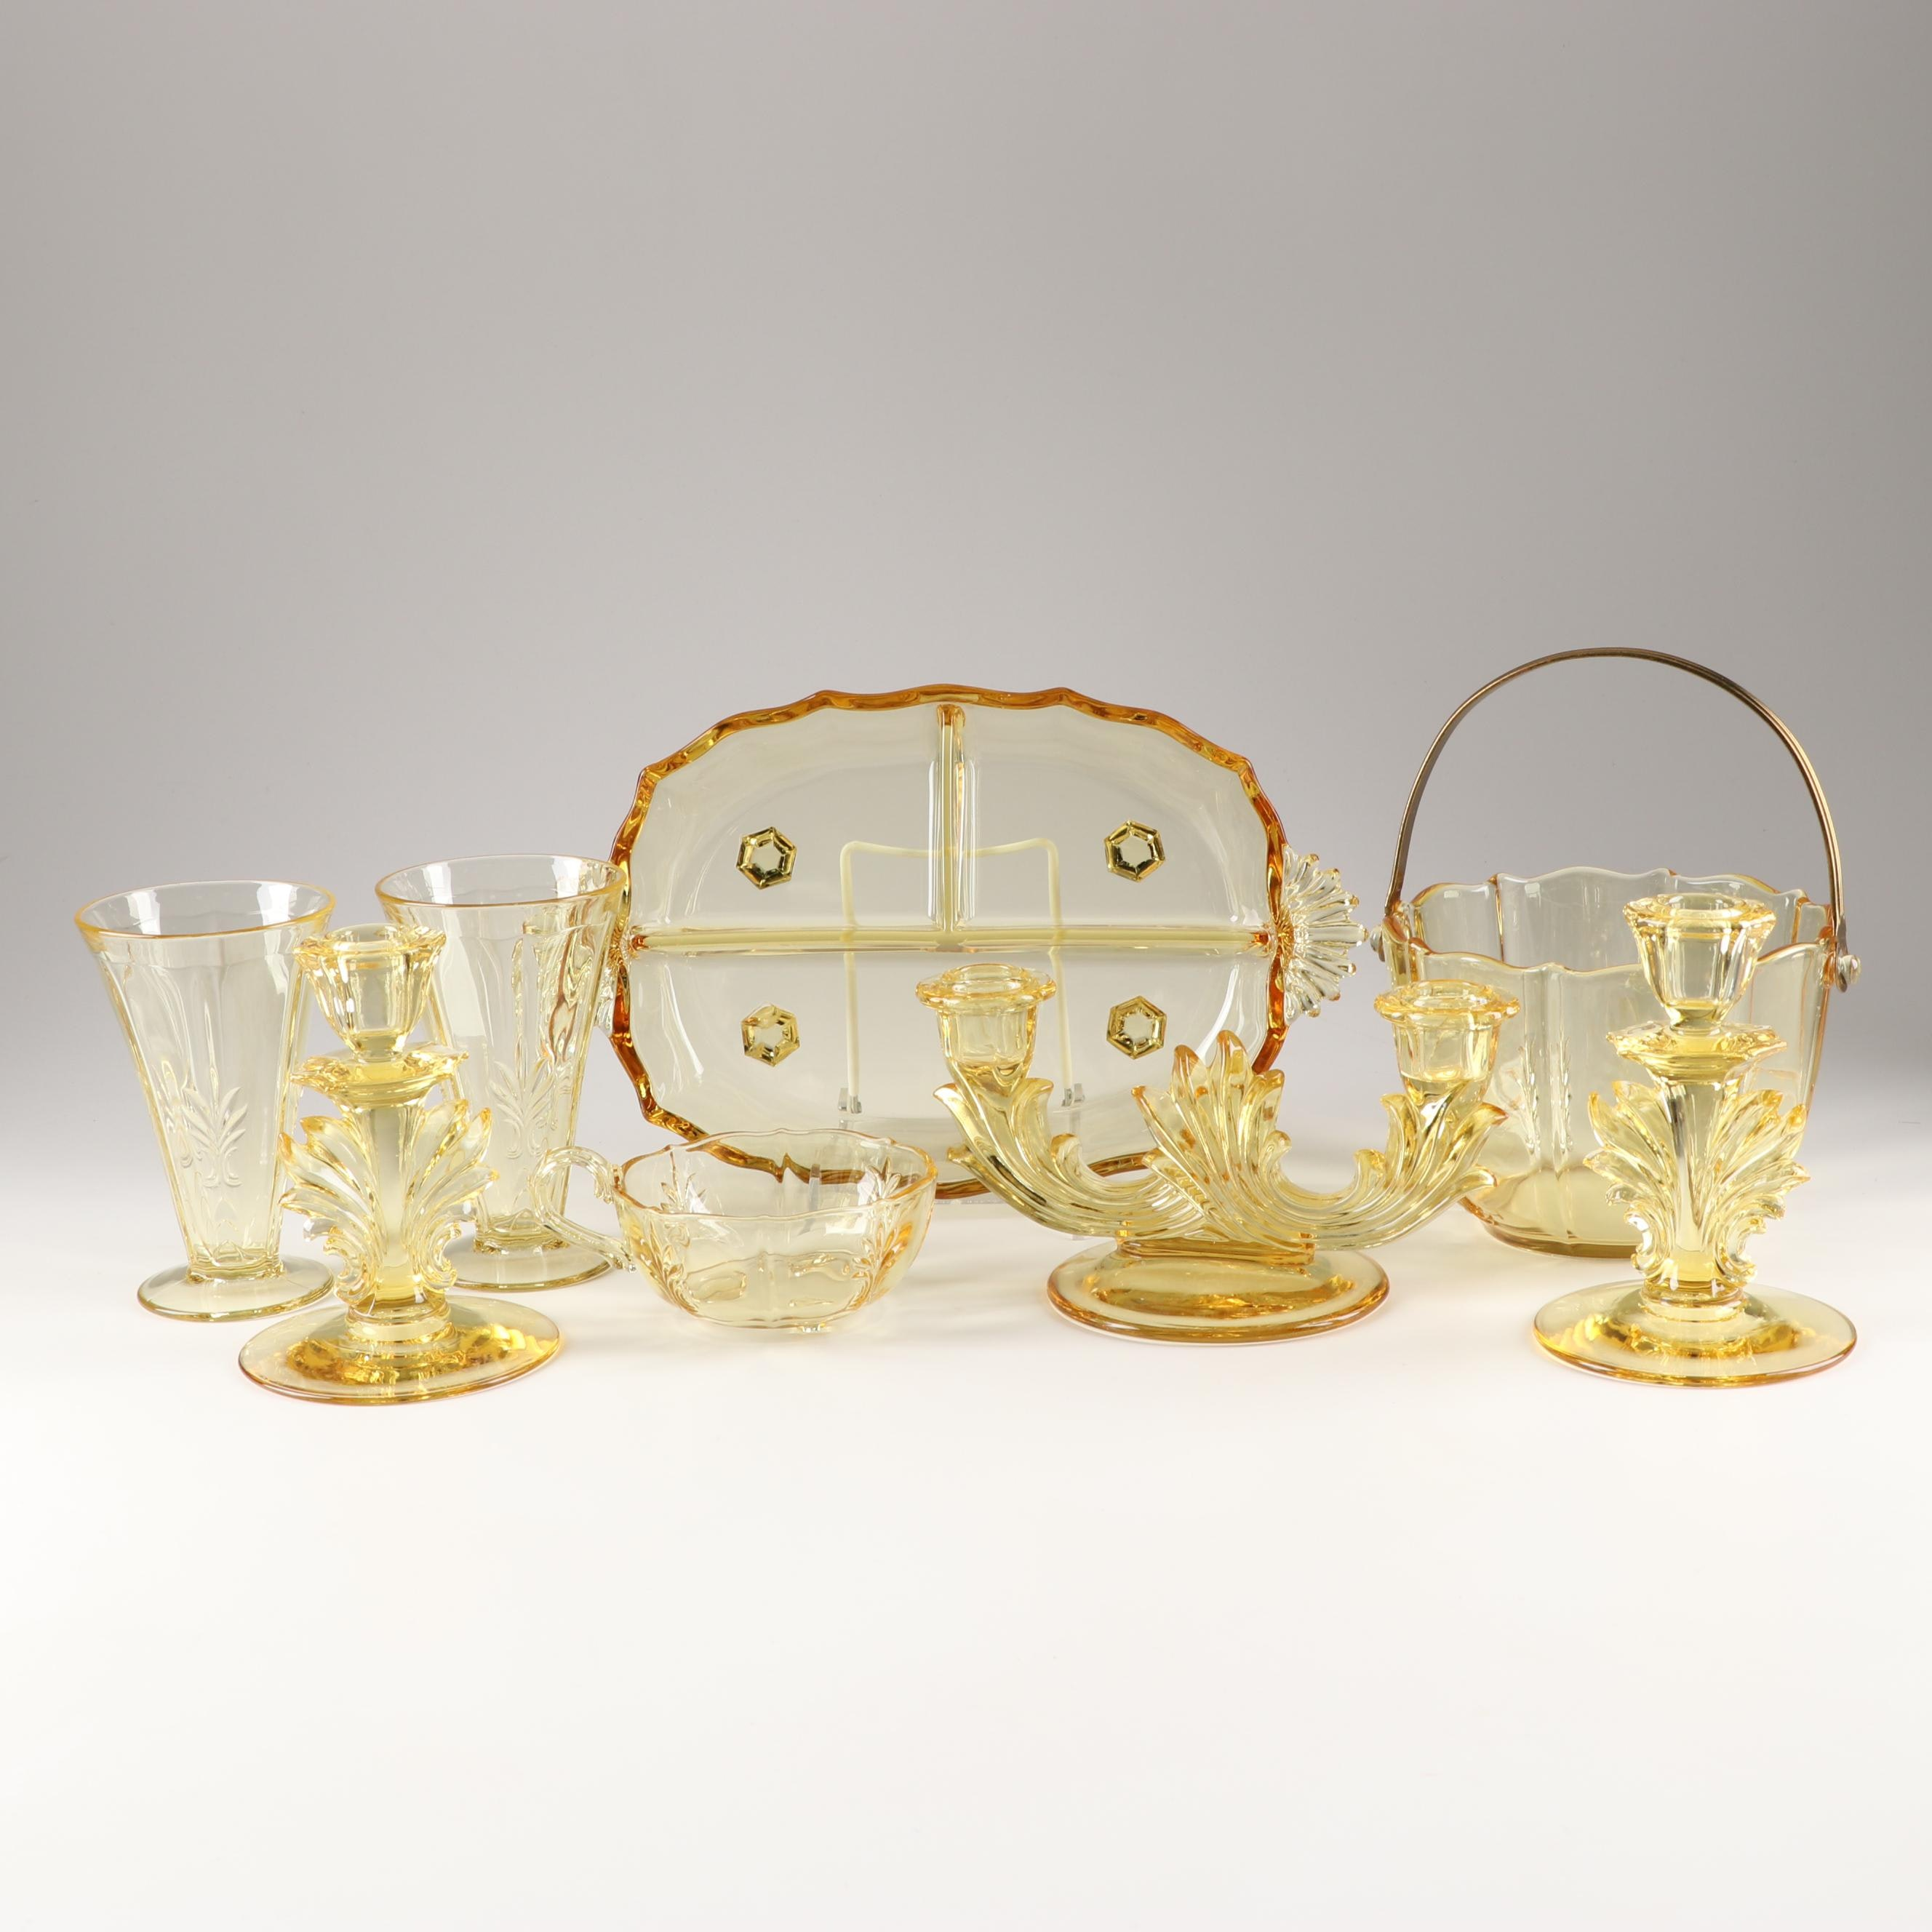 "Fostoria ""Baroque Topaz"" Depression Era Tableware"